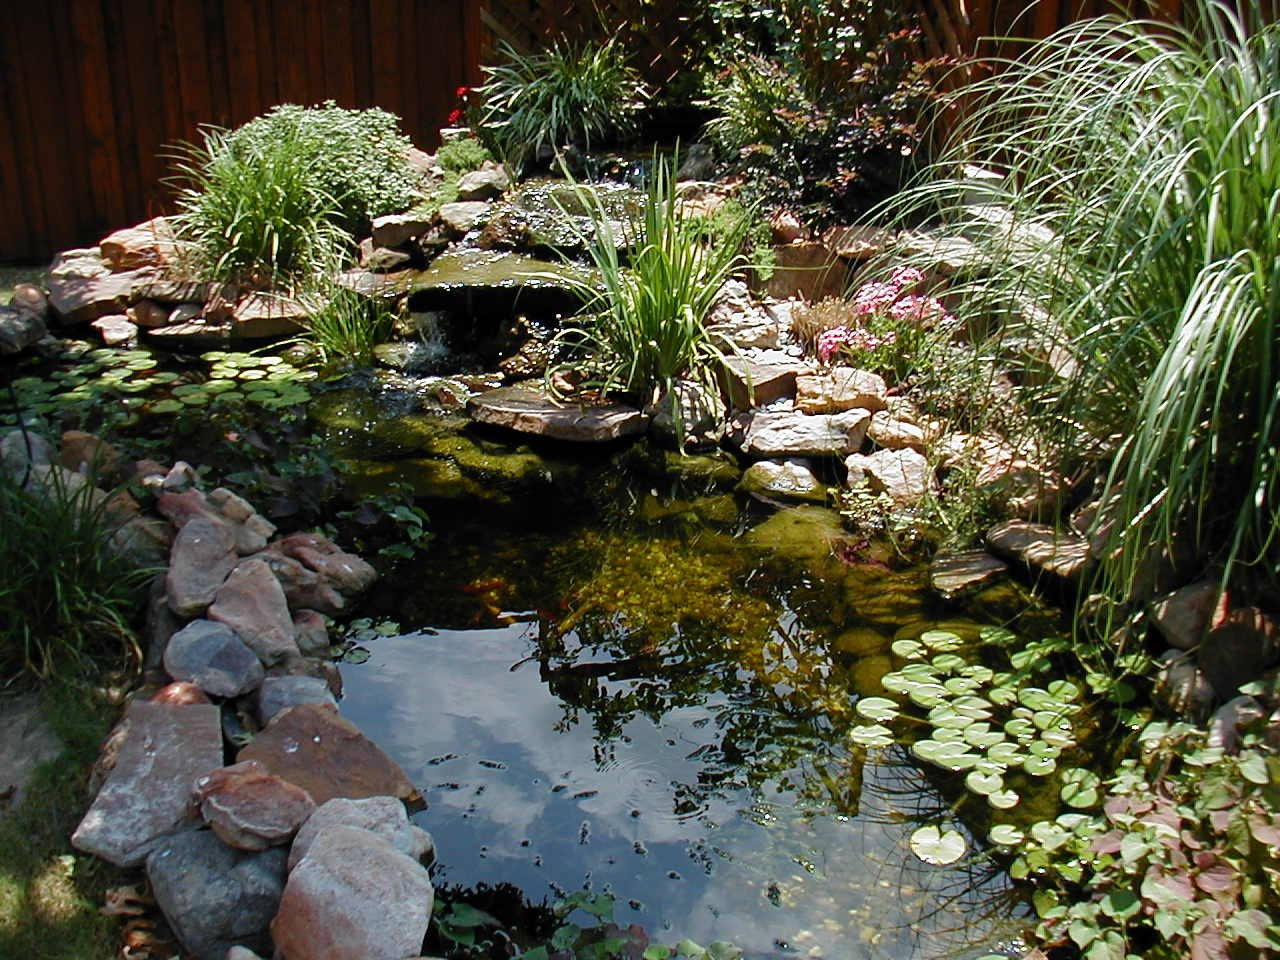 Rancho santa fe pond service pictures rancho santa fe for Pond landscape